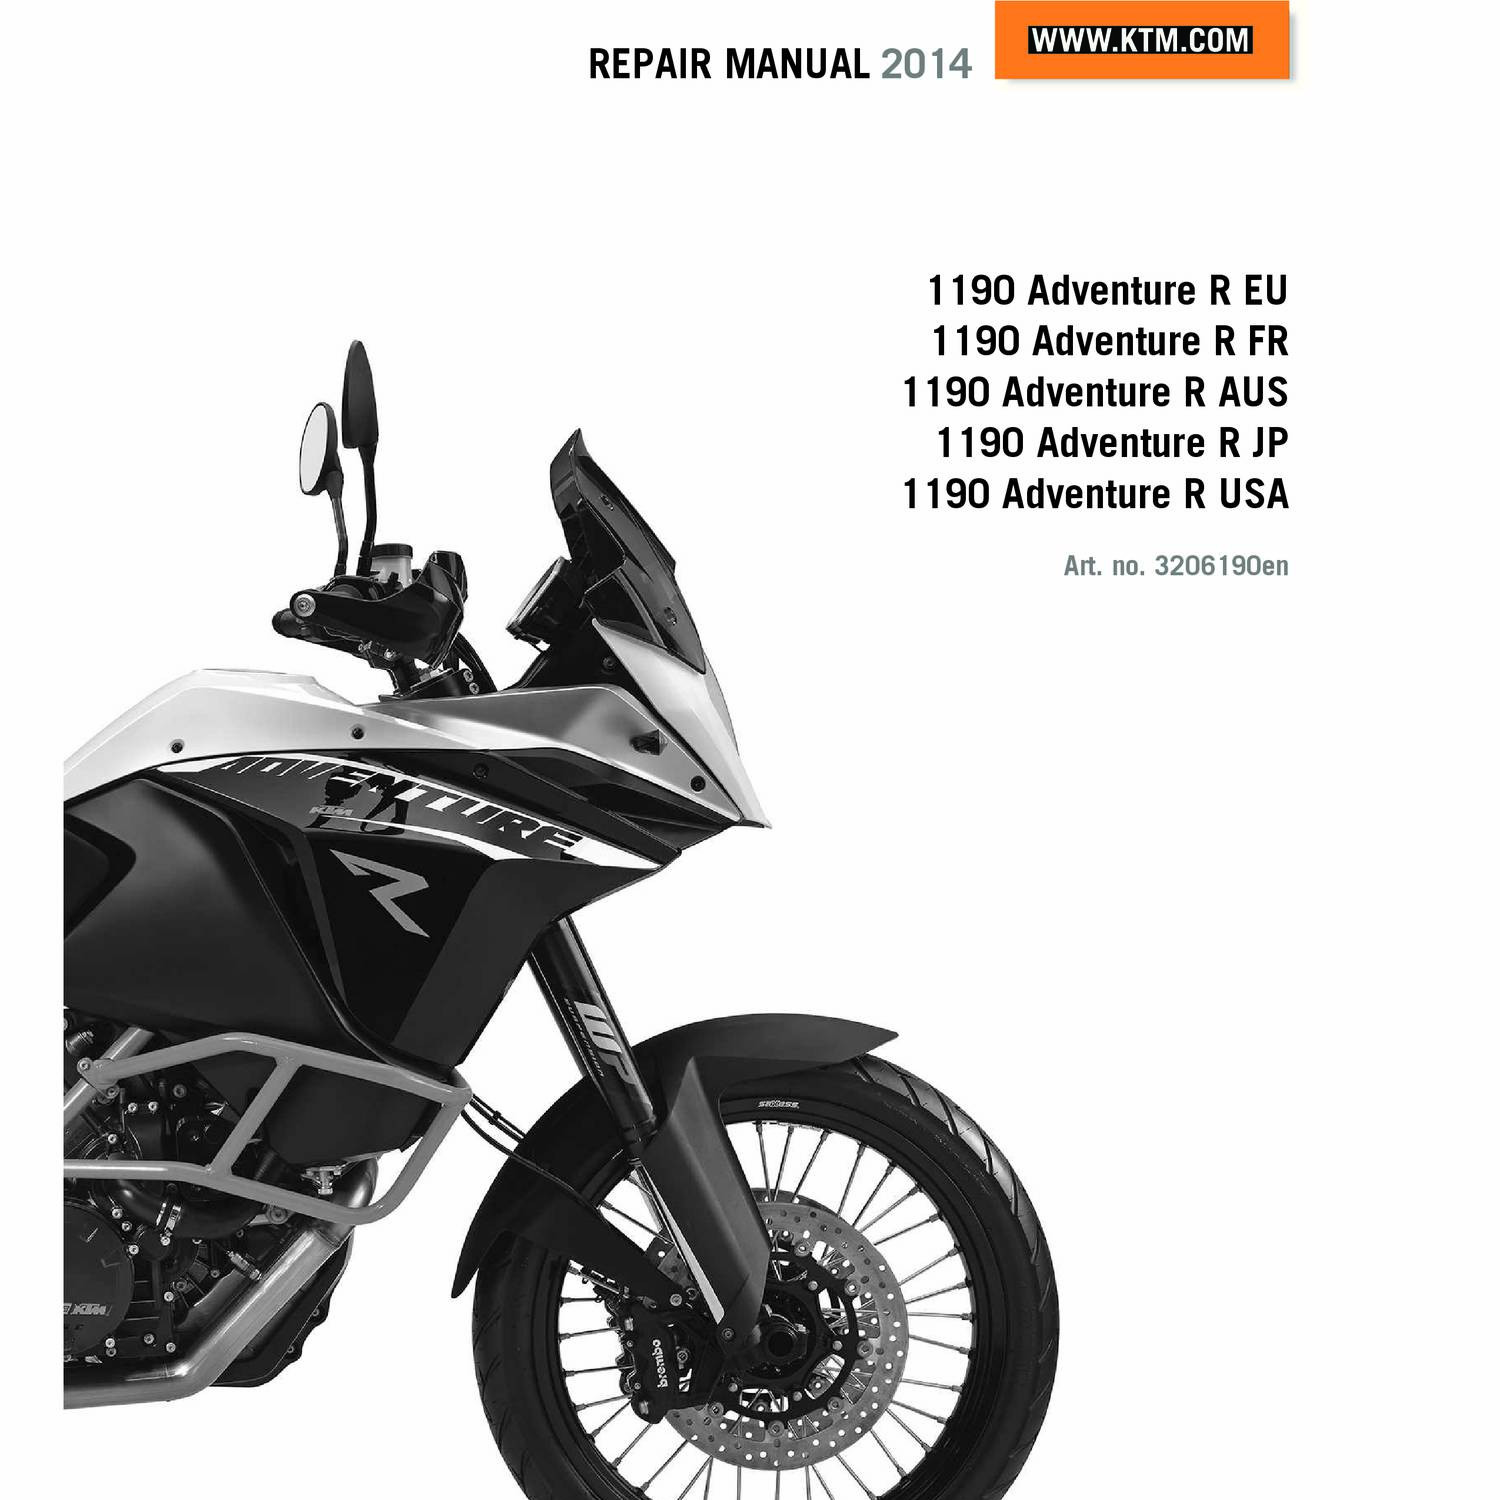 ktm adventure r 2014 service manual pdf - docdroid